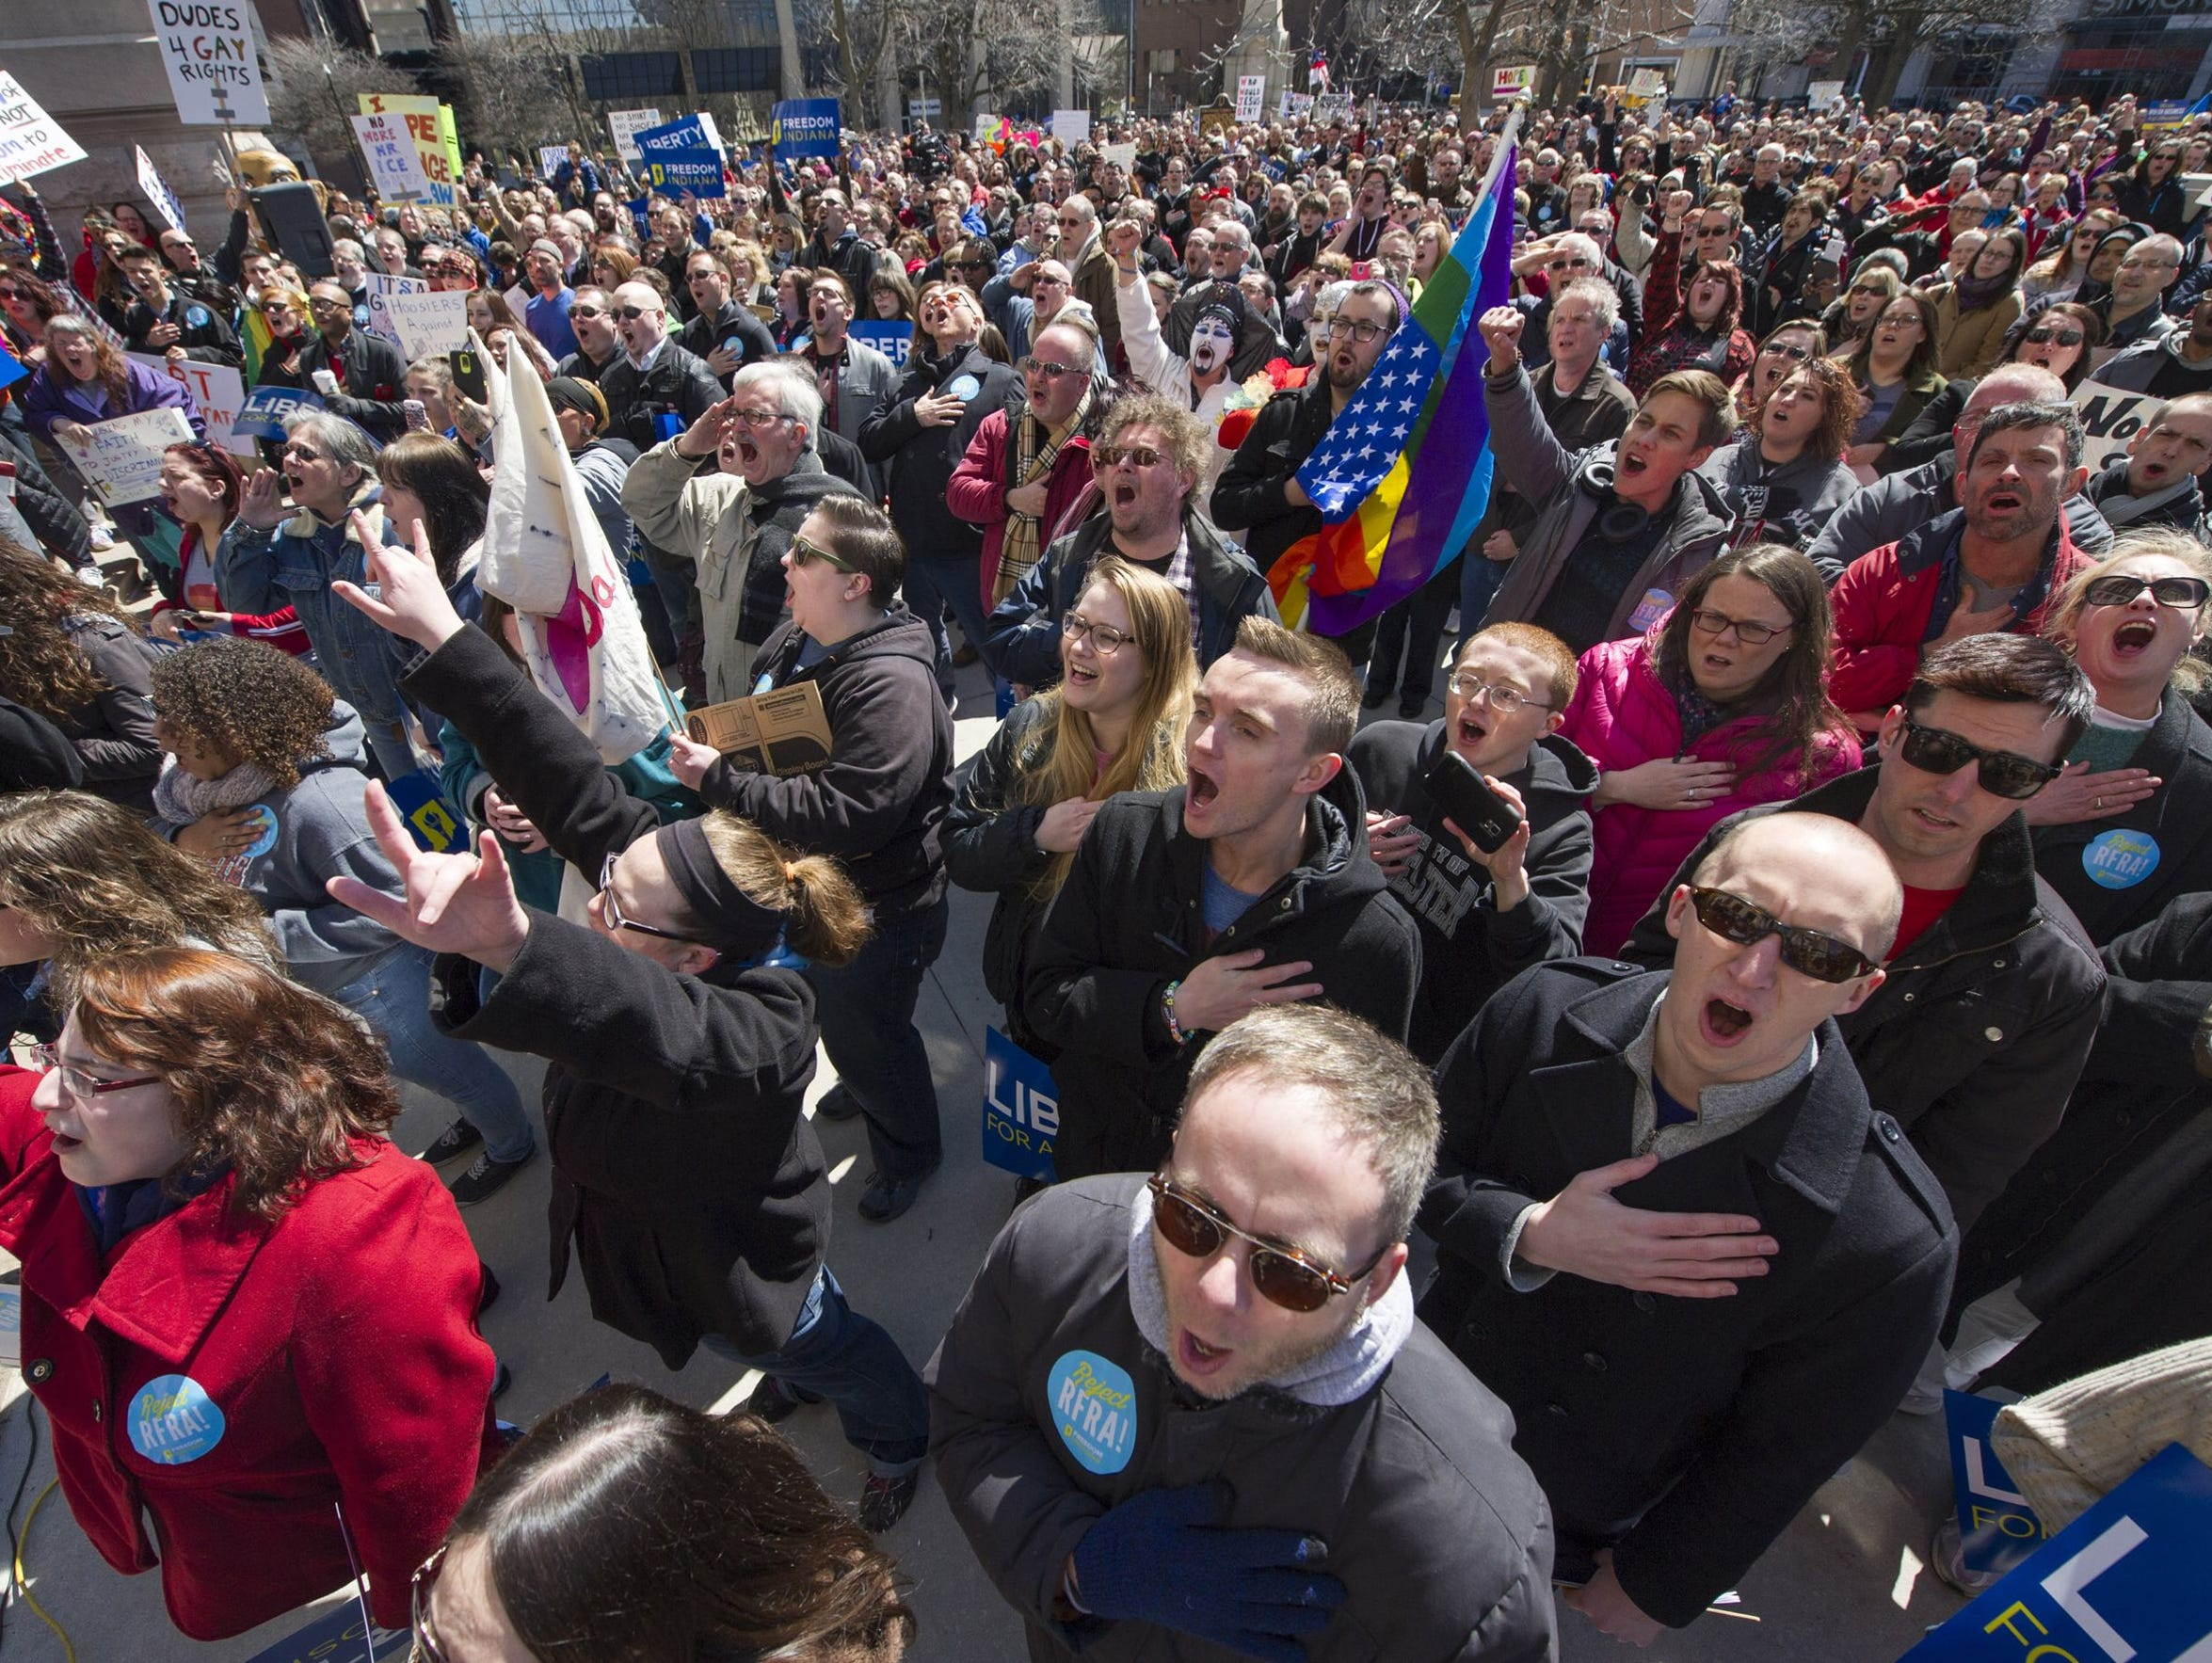 equality freedom and order scotus While 2015 was a watershed year for change, but the battle between religious freedom and marriage equality continues will 2016 see an end to that conflict.